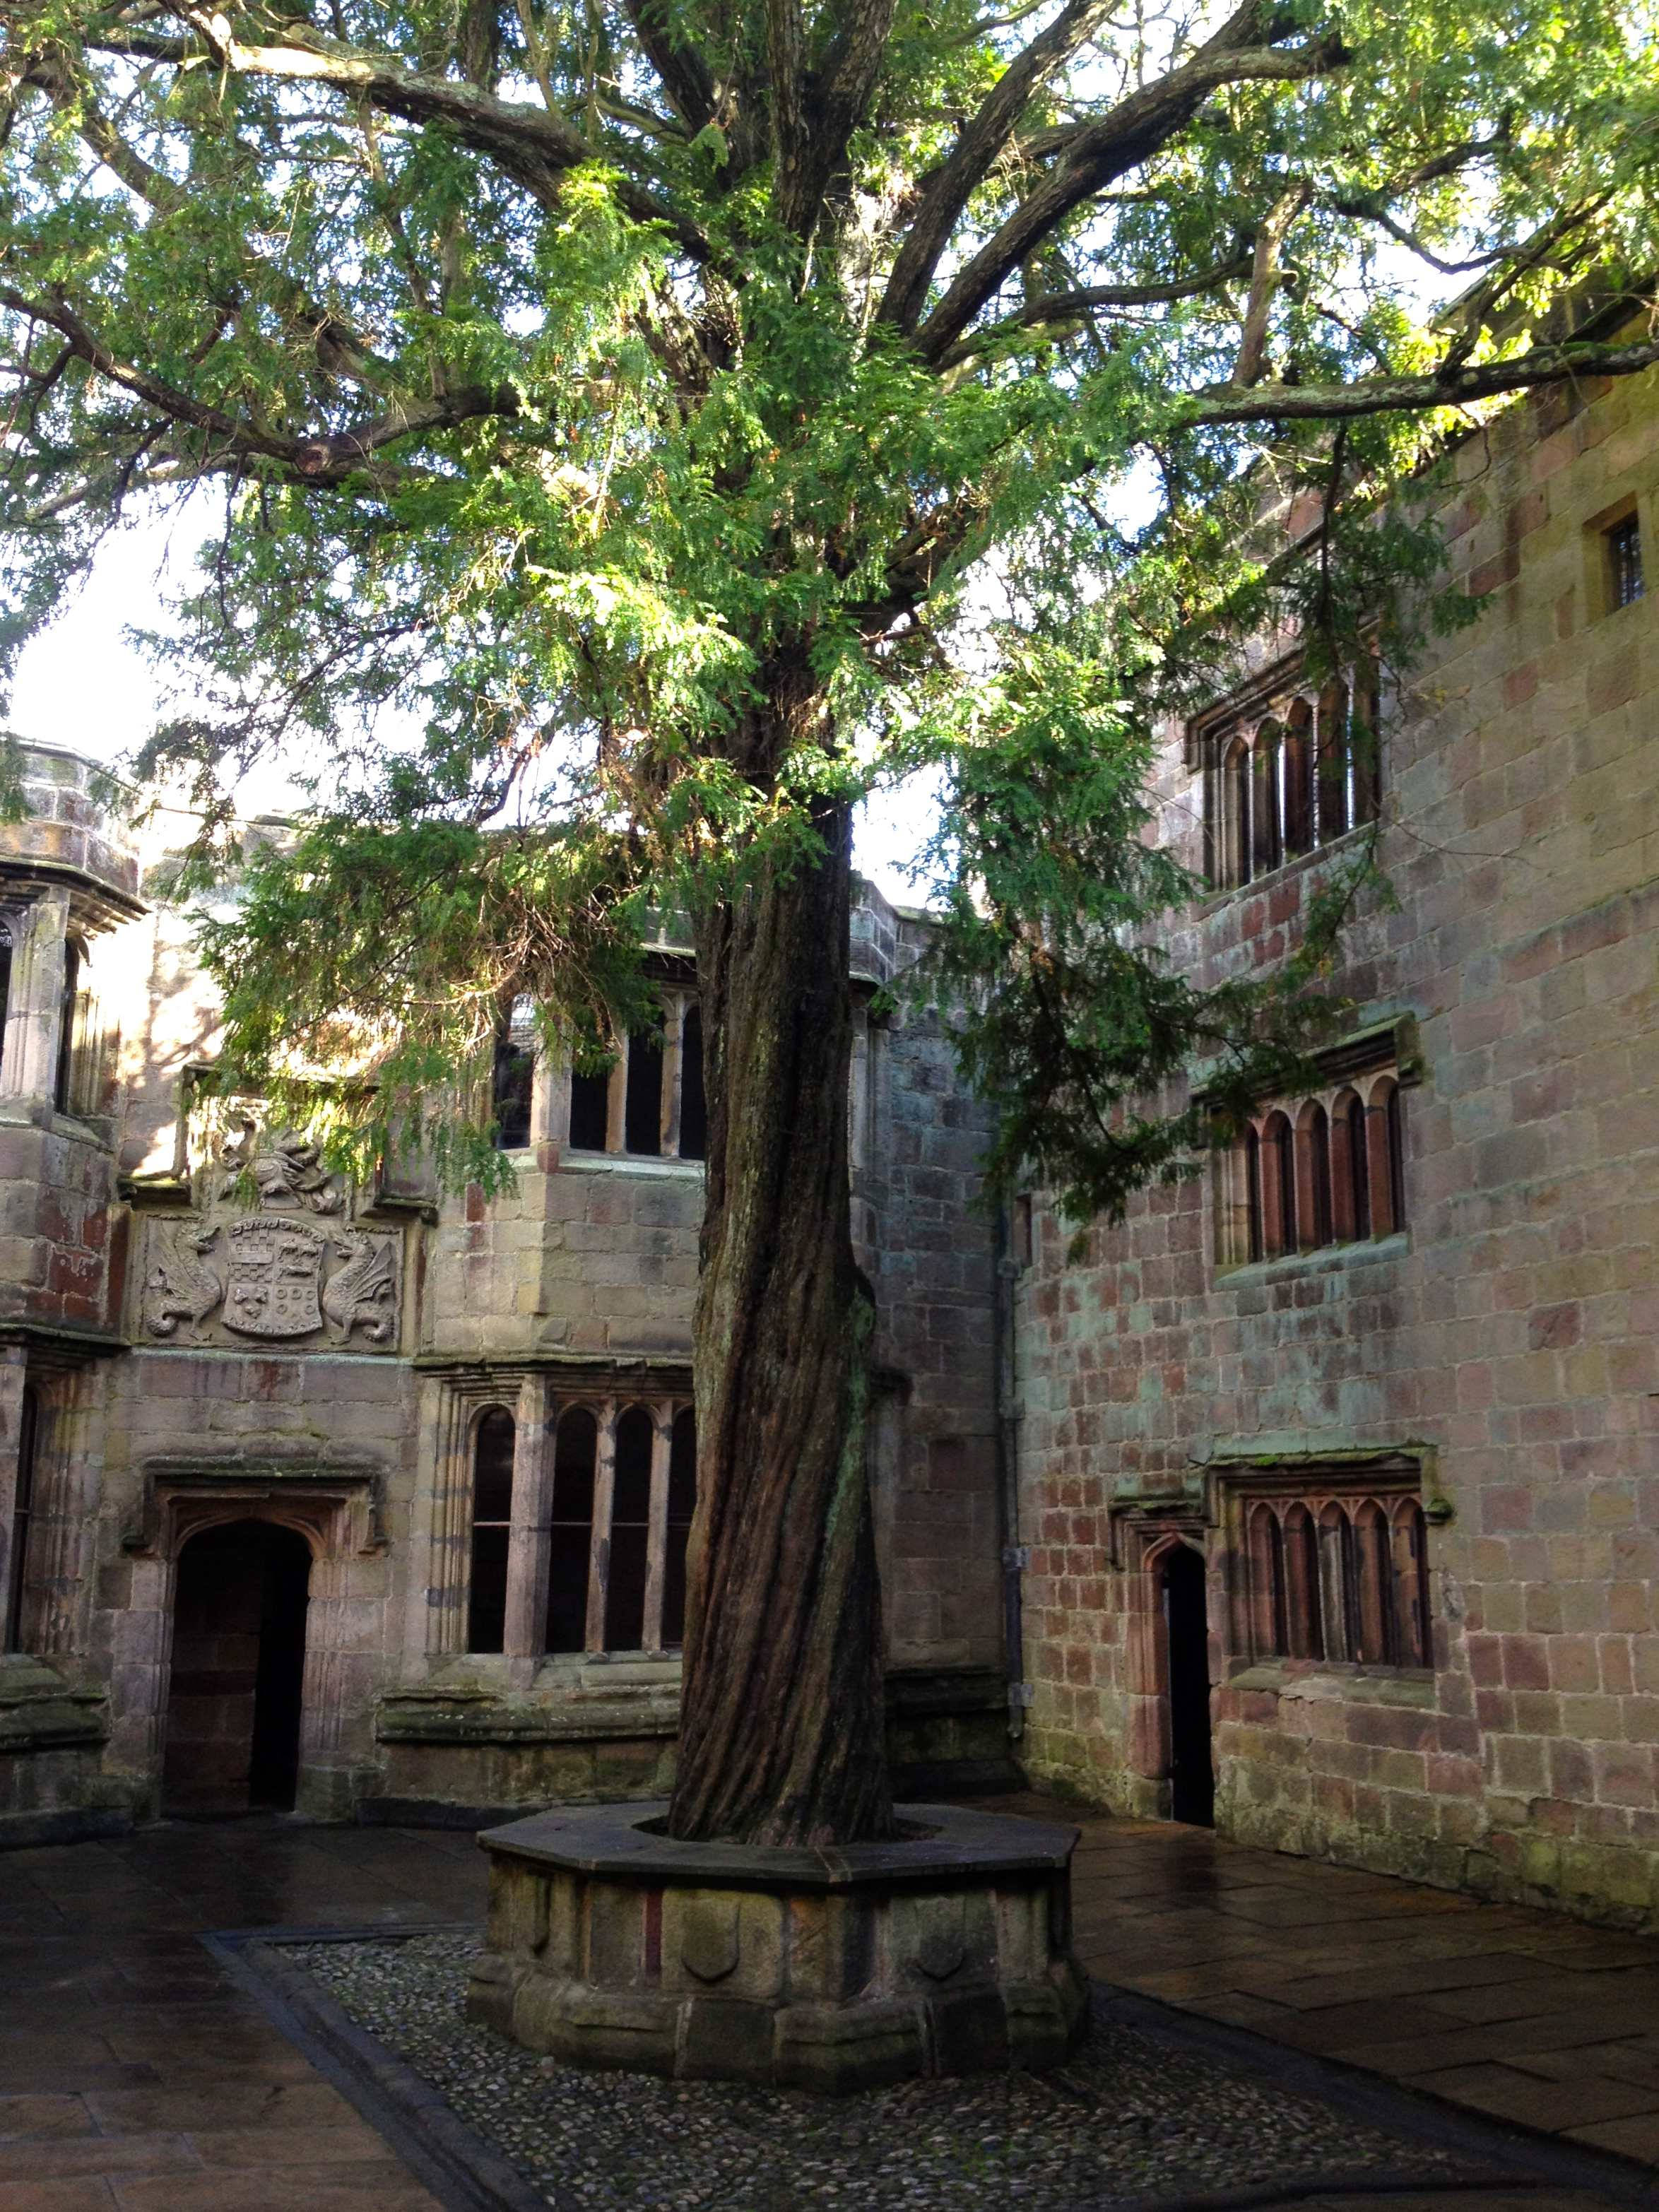 An old tree with a big trunk and lush green leaves surrounded by stone buildings